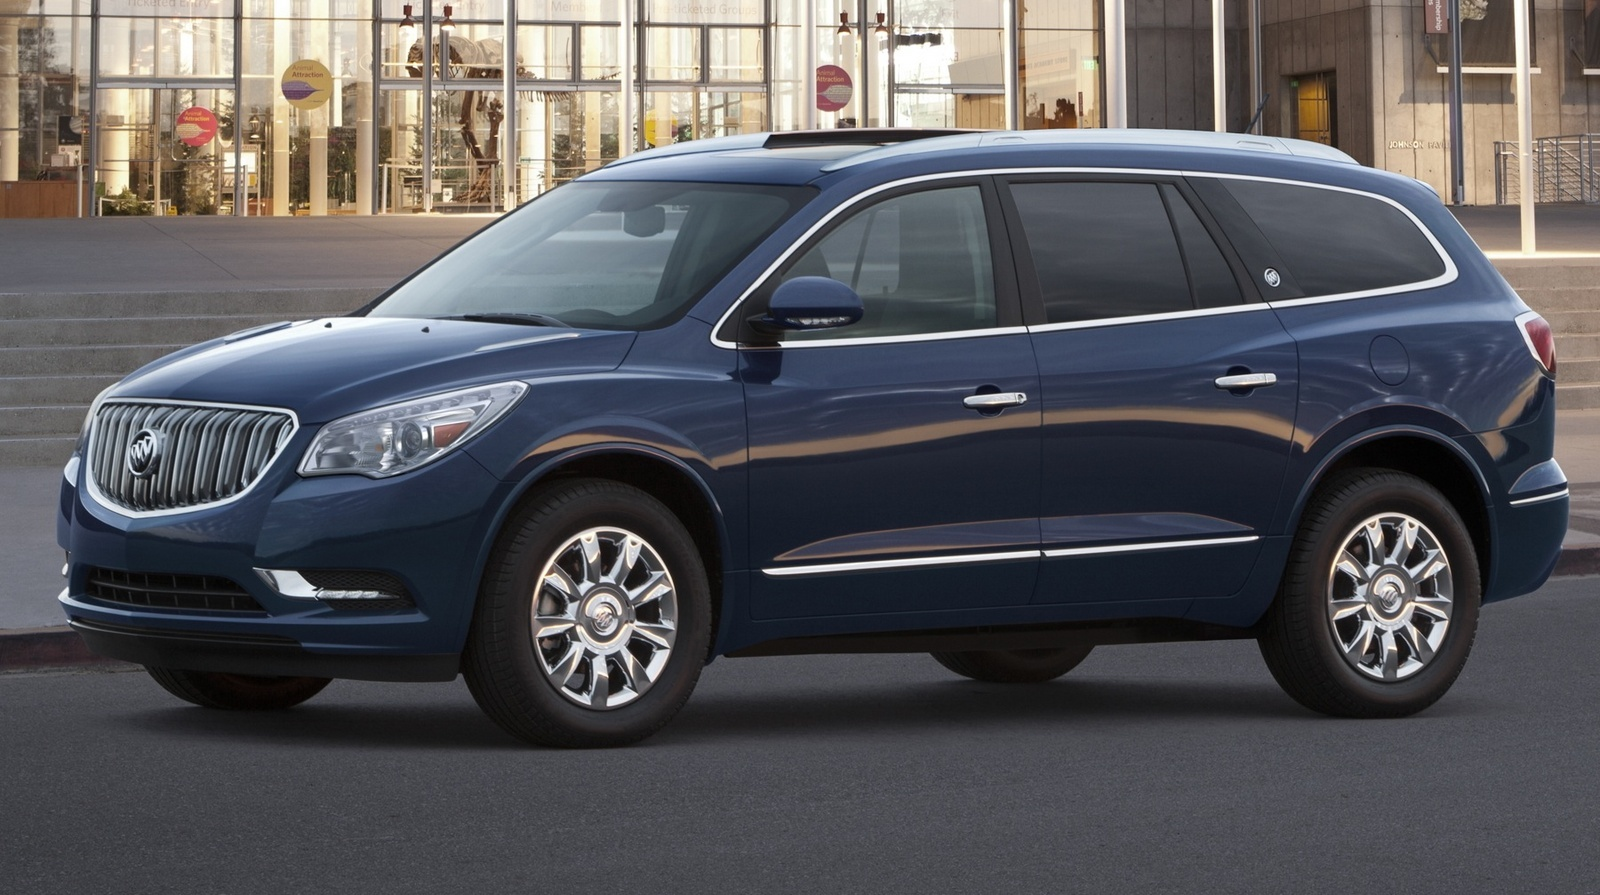 pictures and auto enclave com specs wallpaper database information buick suv